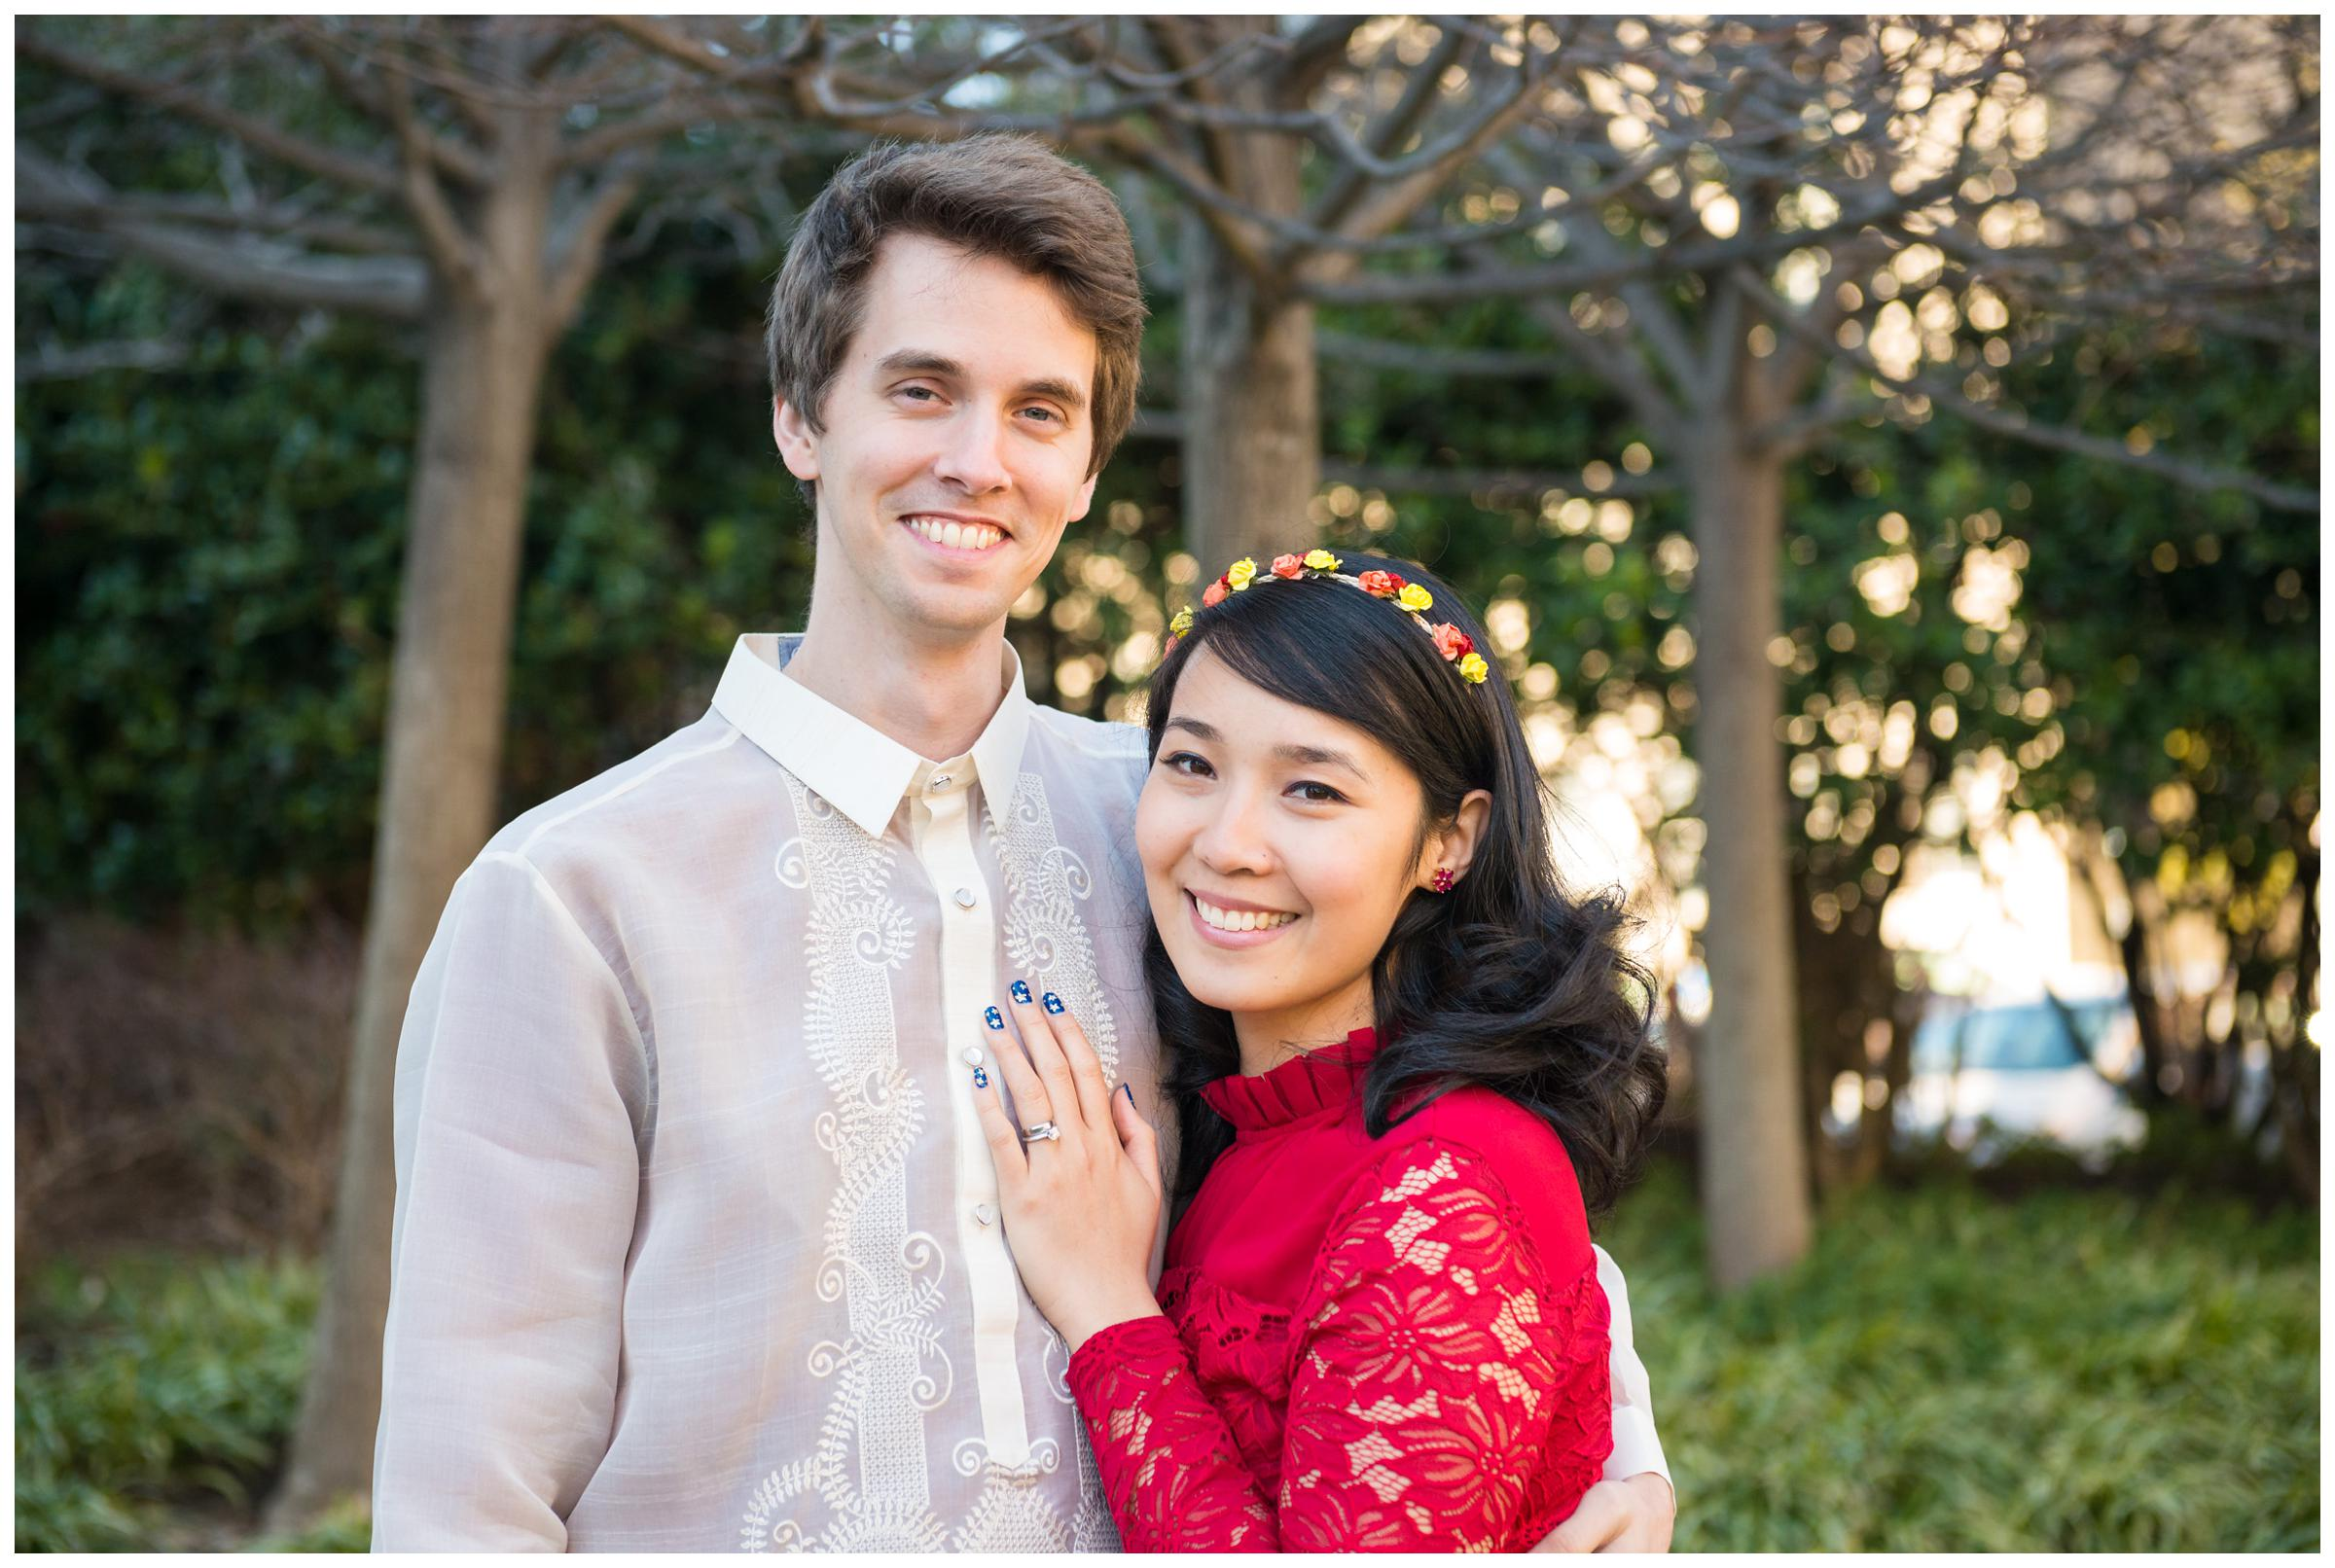 portrait of the bride and groom in Filipino wedding attire